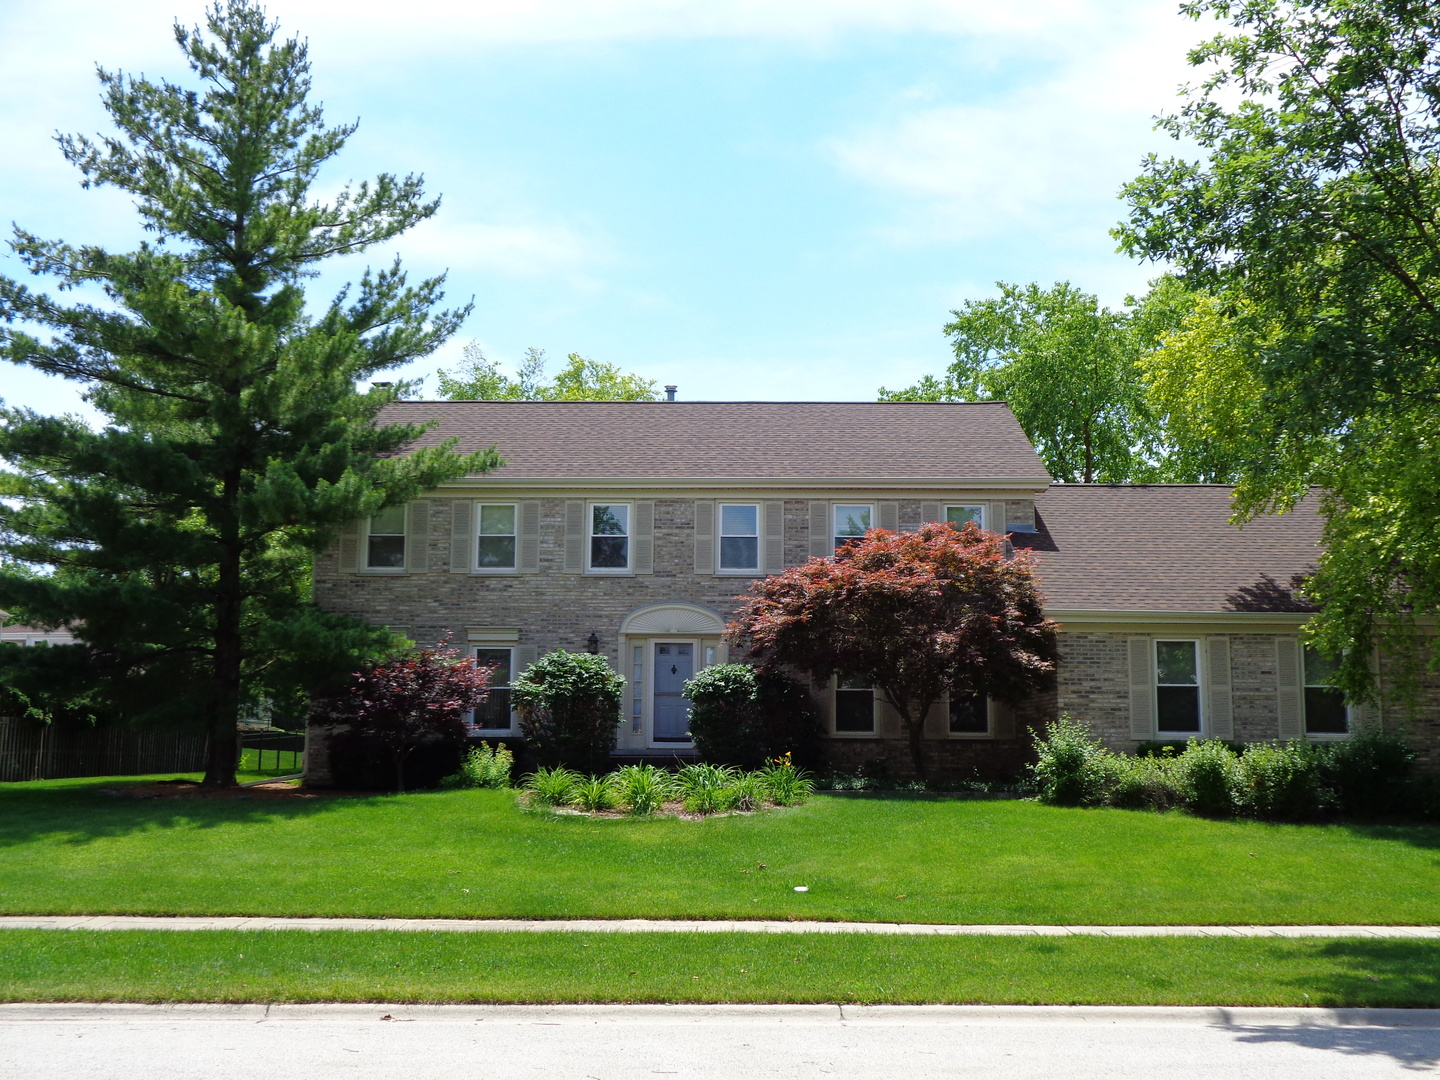 17 Cherrywood Drive, Schaumburg, Illinois